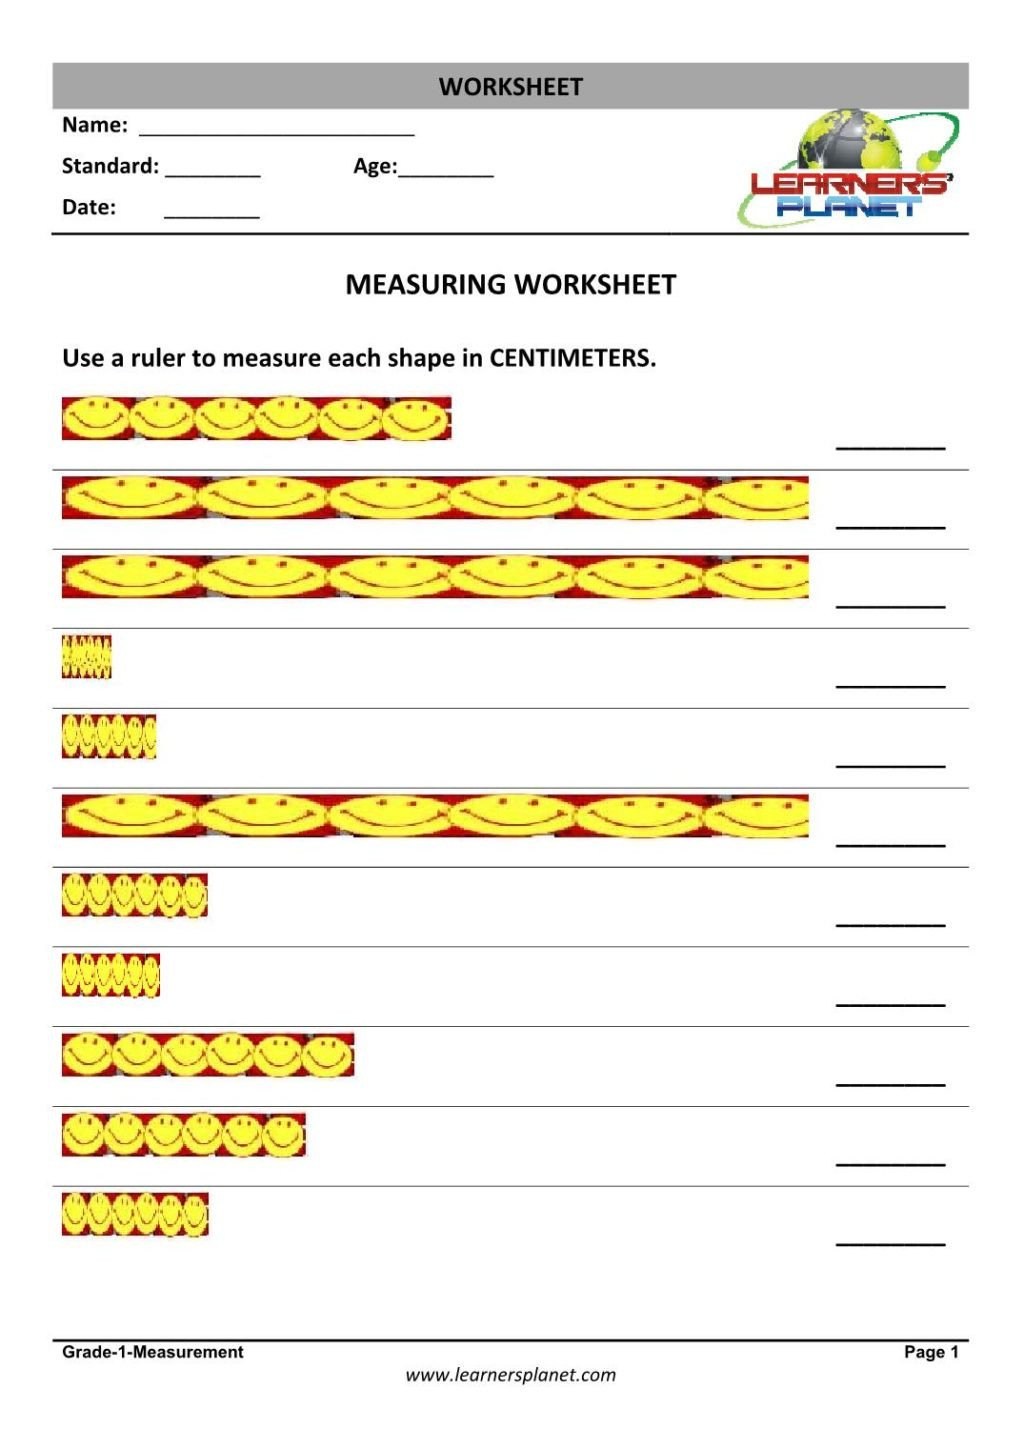 Measuring Inches Worksheets Worksheet Worksheet Ideas 5th Grade Measurementts Fifth